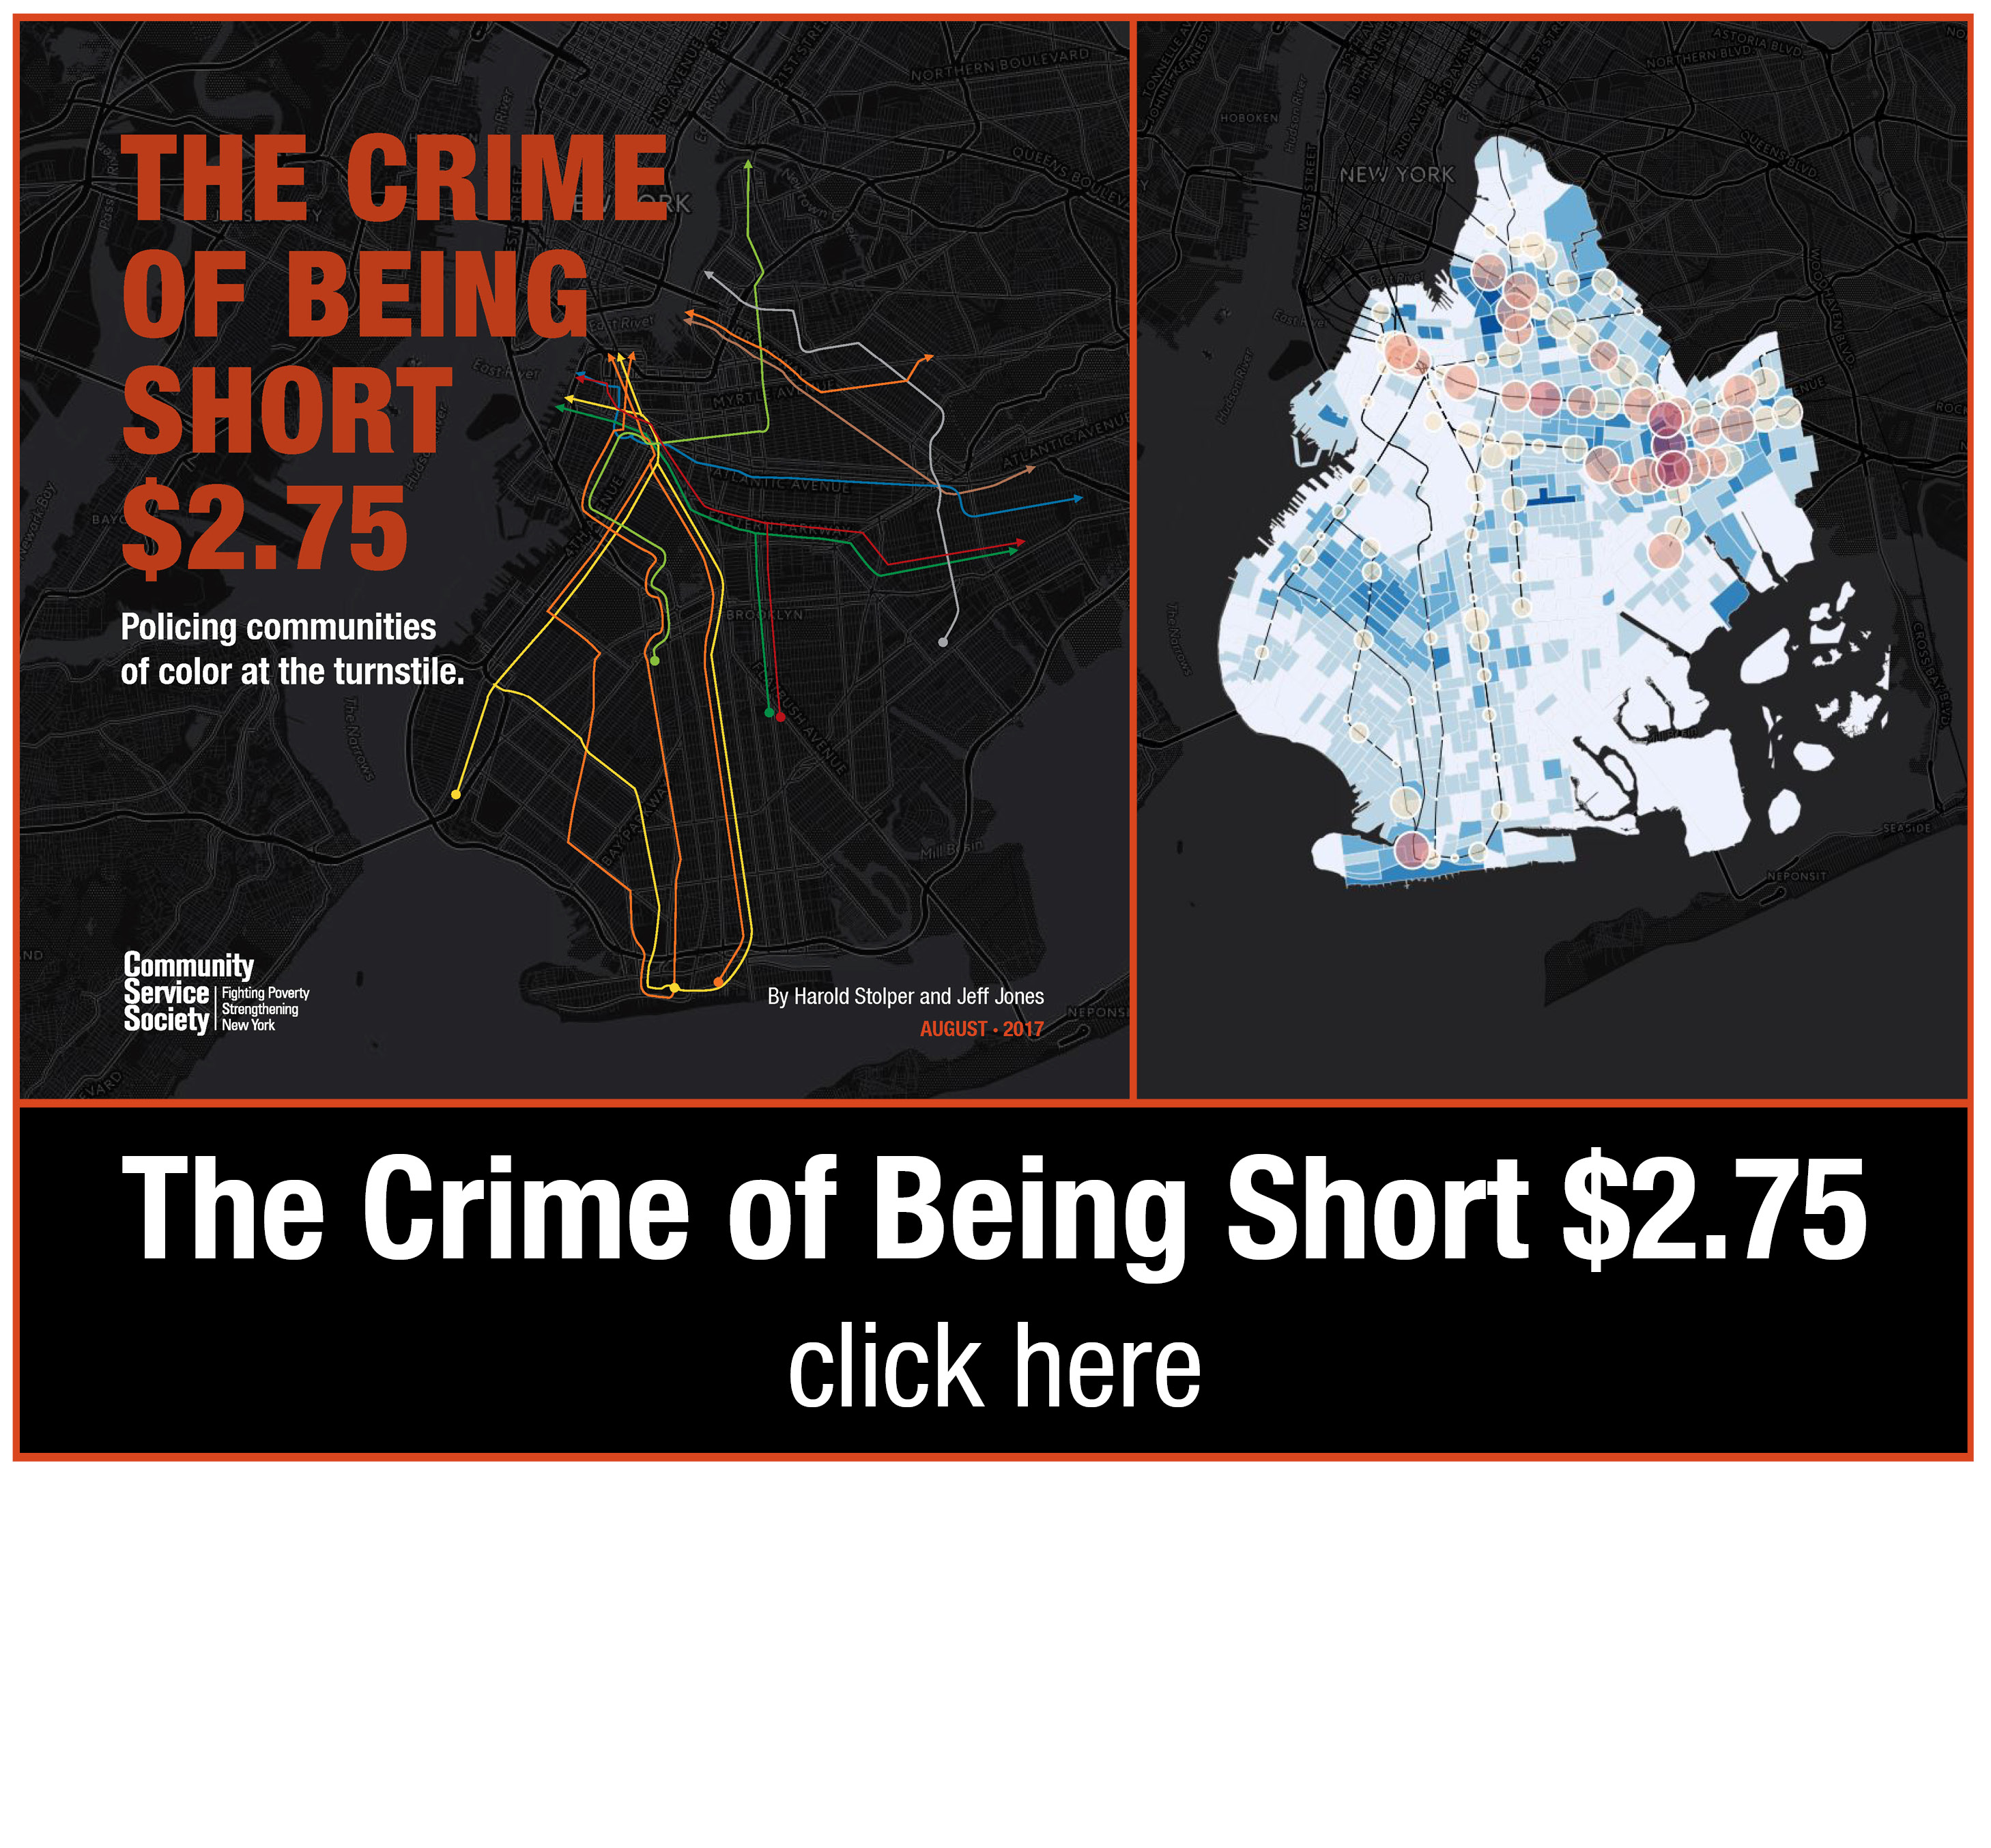 The Crime of Being Short $2.75